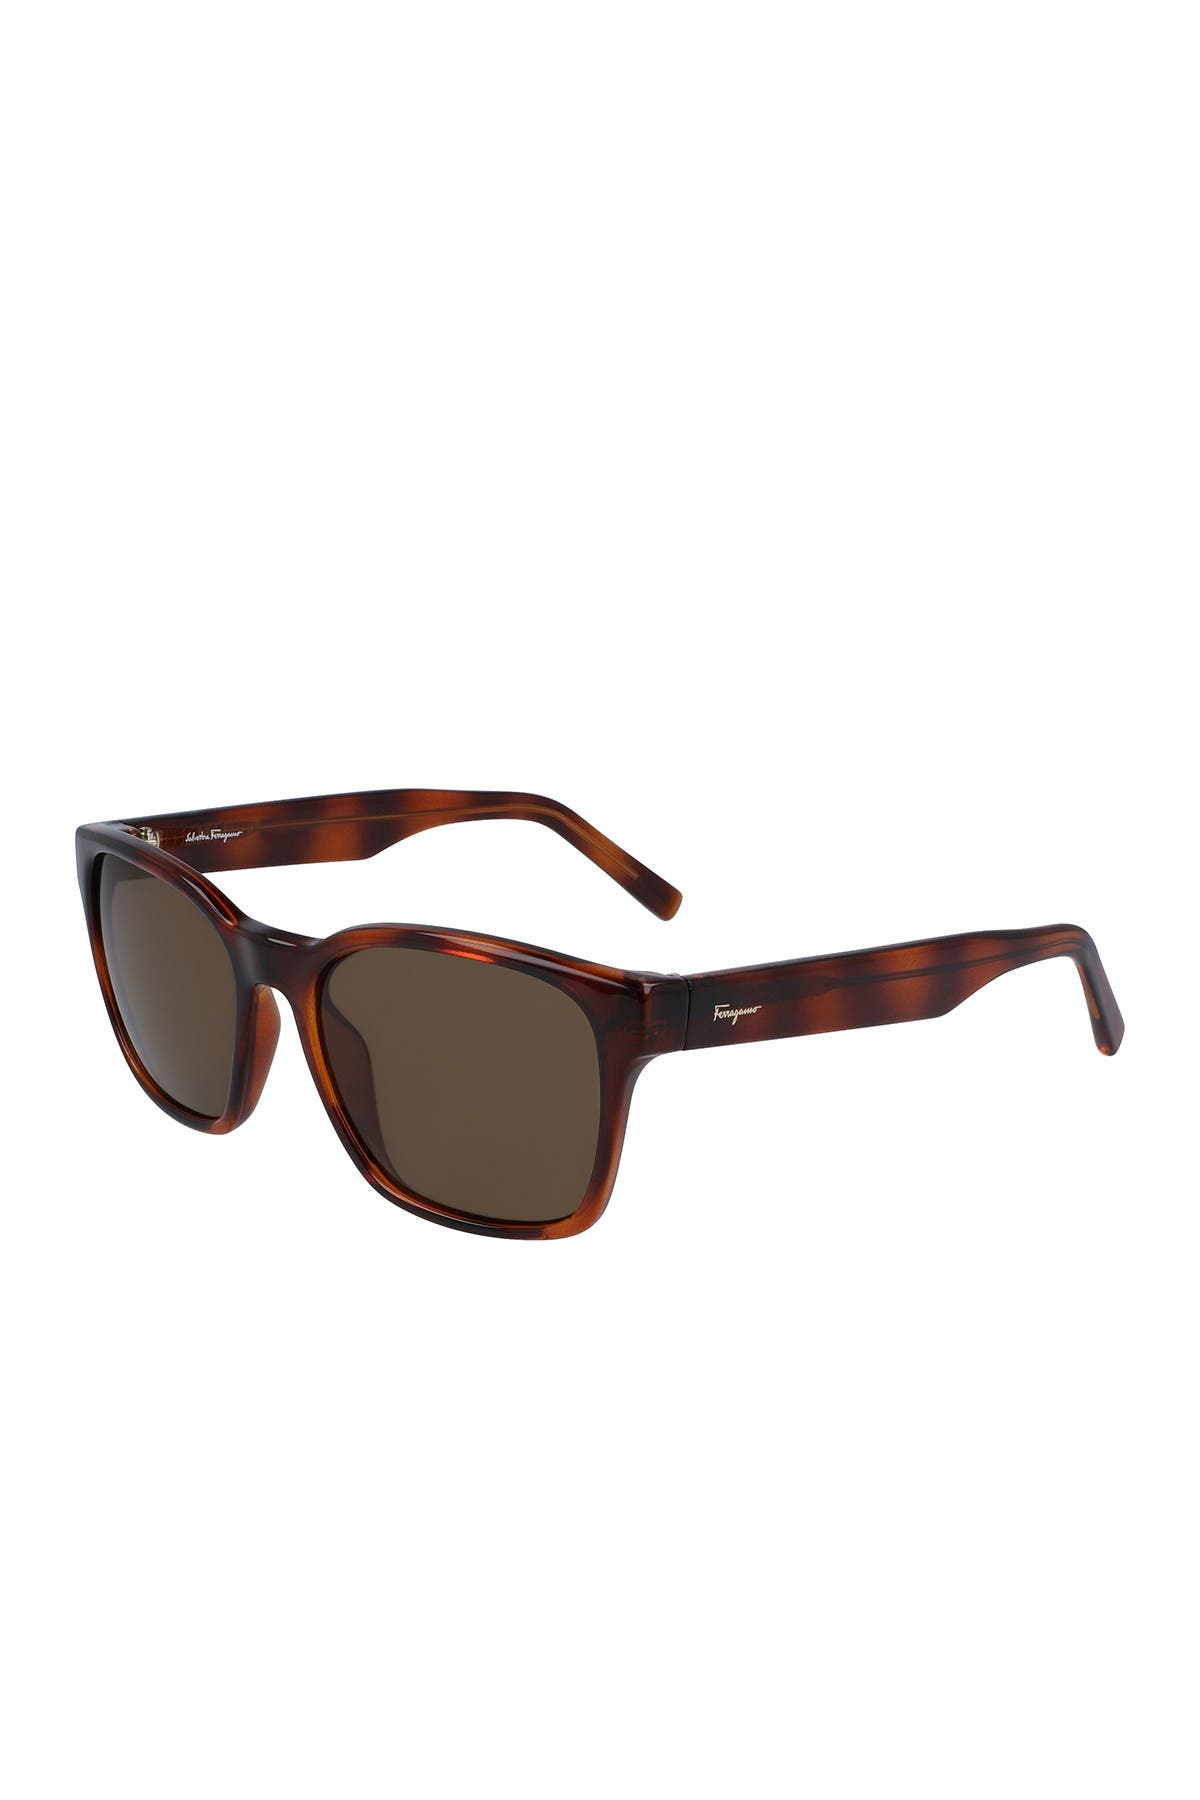 Image of Salvatore Ferragamo 55mm Square Sunglasses